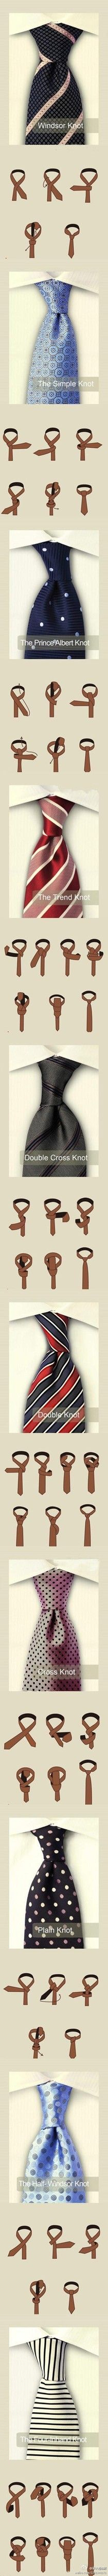 Windsor Knot Classic How I Want To Dress My Boyfriend Pinterest Trinity Tie Diagram Learn A Fold Pocket Square An Eldredge And More You Will Find Ways Other Necktie